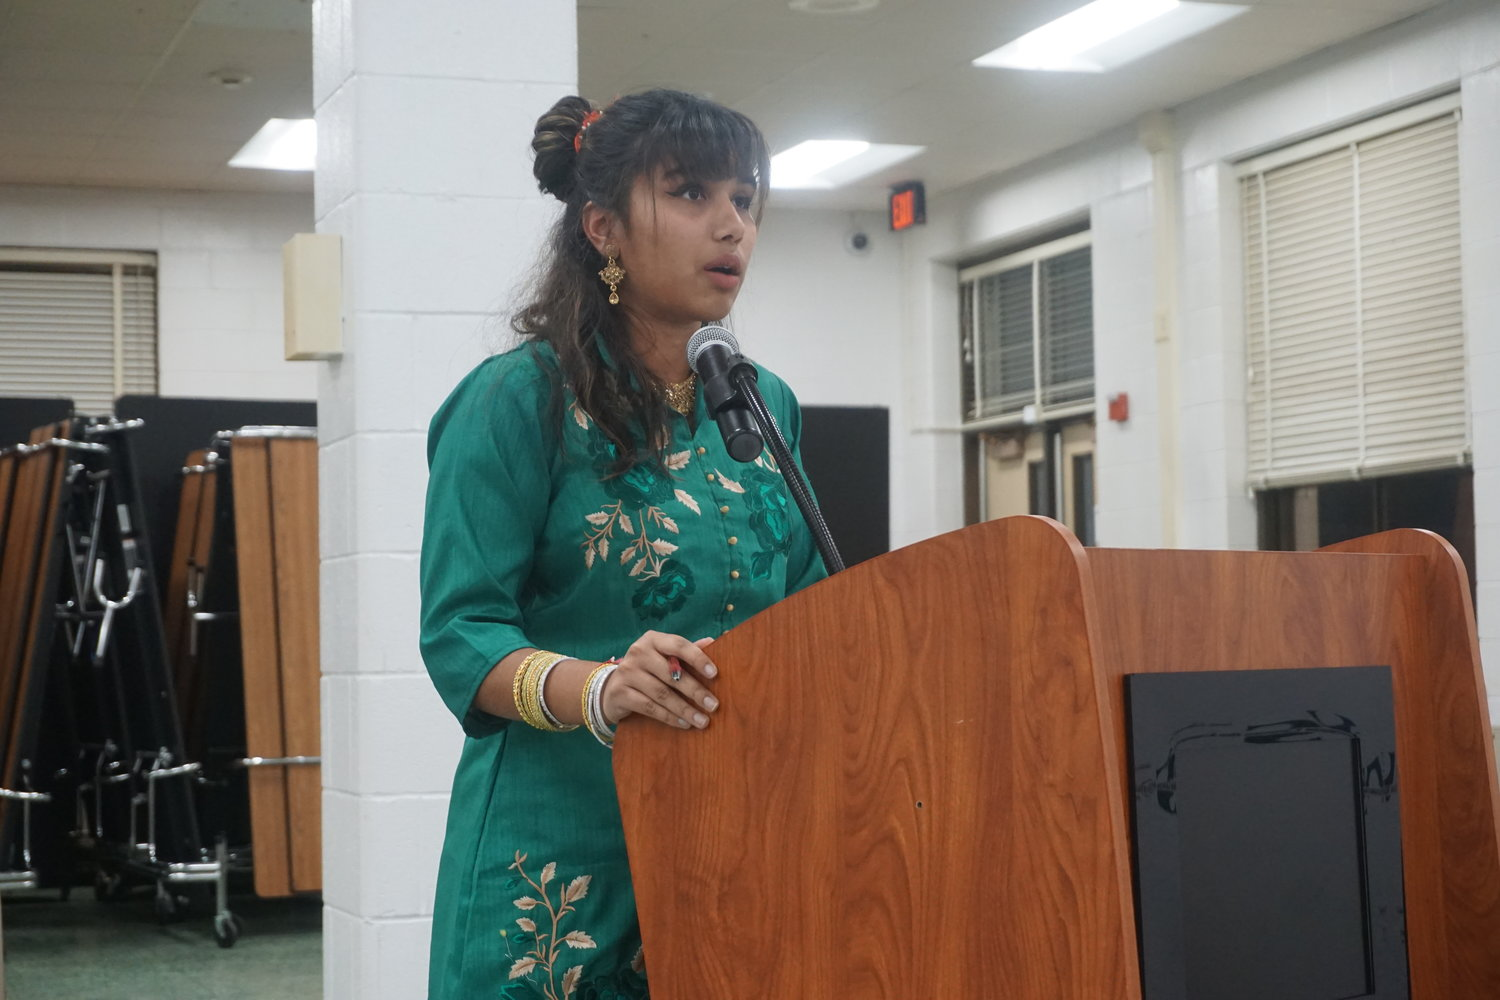 South graduate, Abby Arjune, renewed her push to have the Hindu holiday of Diwali recognized on the high school district calendar. It is the third time she has come before the school board.